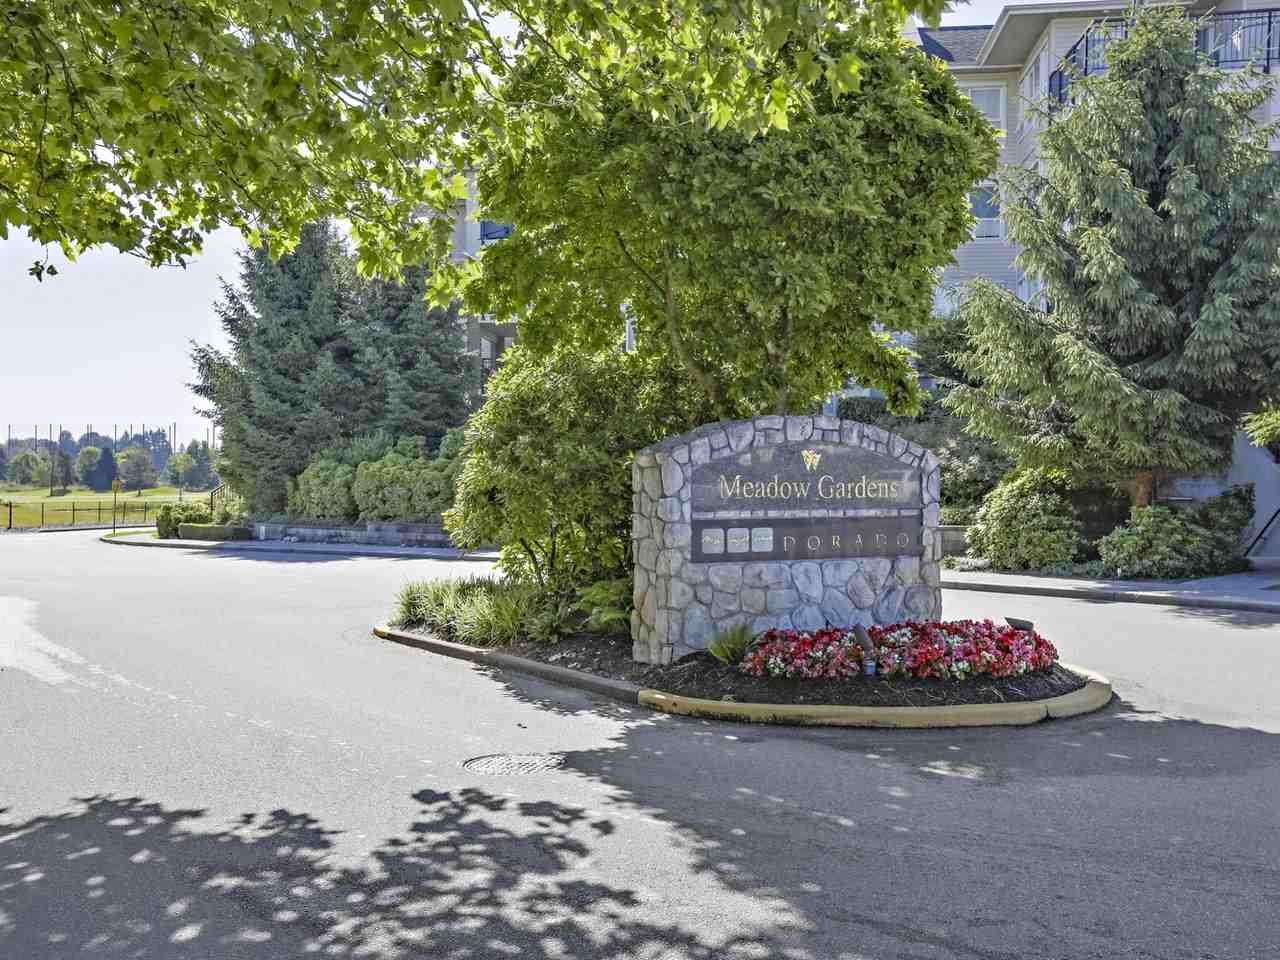 FEATURED LISTING: 120 - 19673 MEADOW GARDENS Way Pitt Meadows